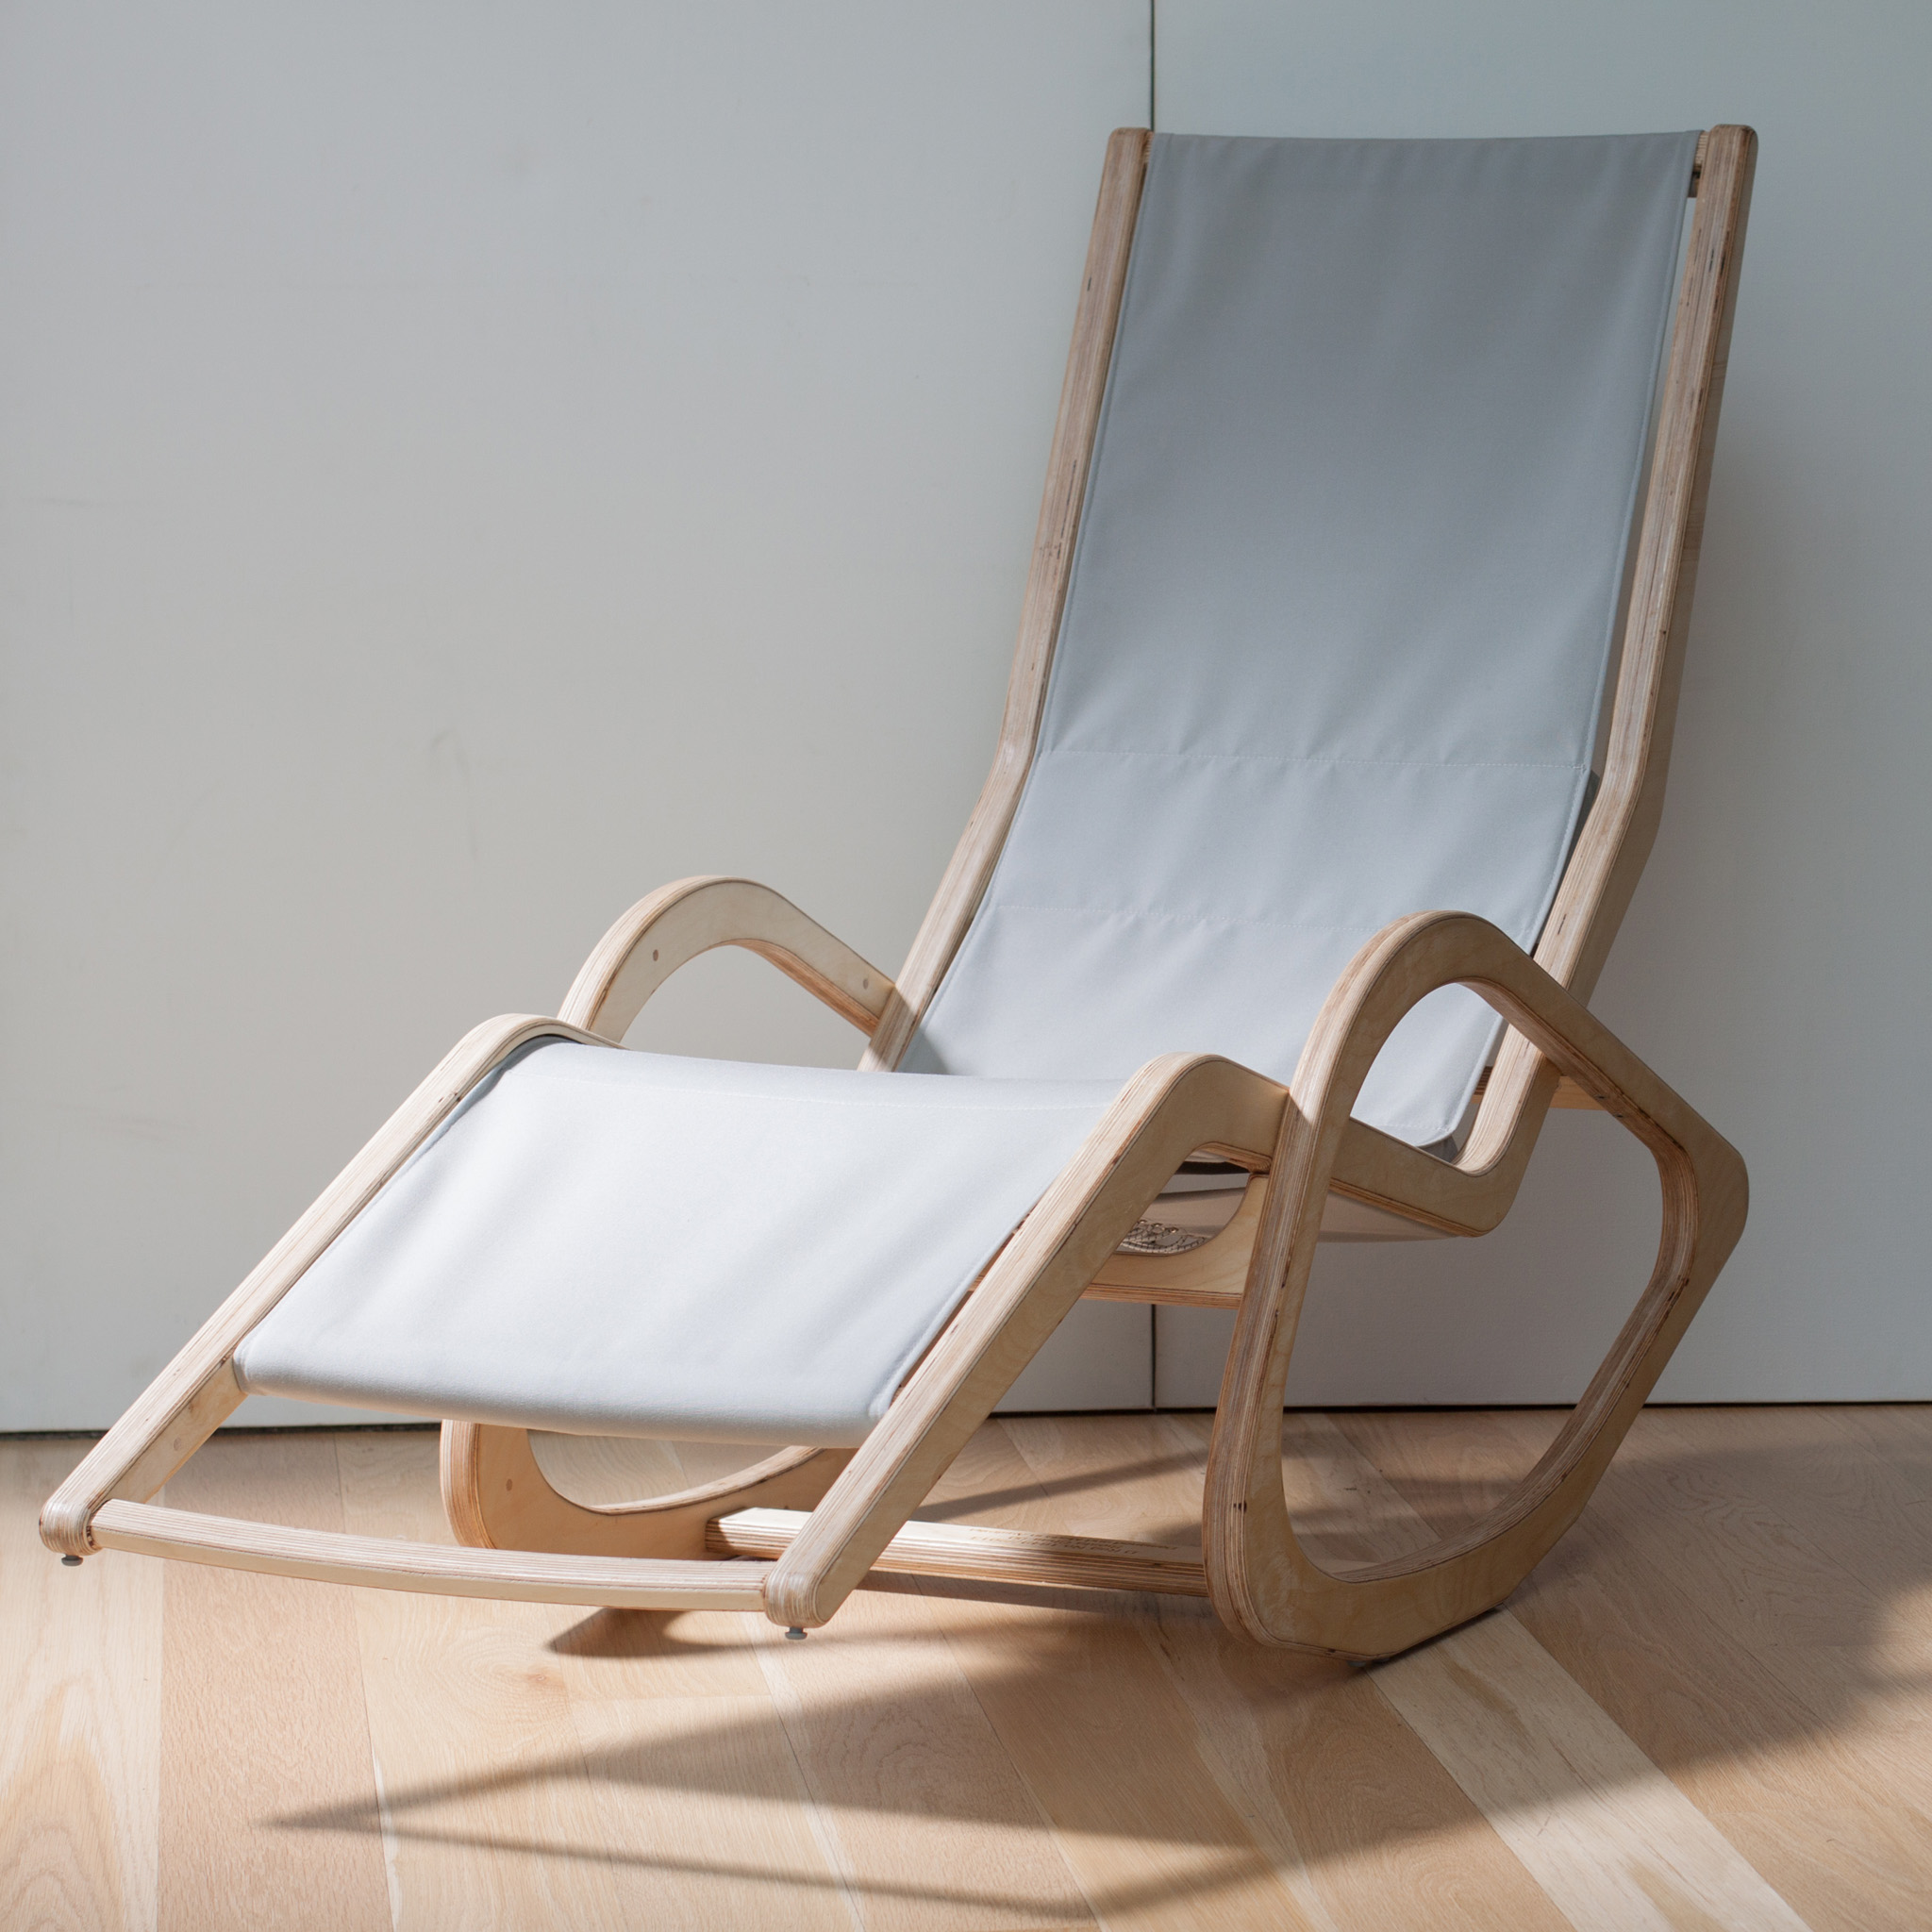 The Onada Siesta Chair is an Ergonomic Recliner.  Size-1100(H) x 580(W) x 1600(L) mm.  Price in Australian Dollars.  $1,500.00 (with Zepals Fabric).  Australian Registered design: 16497/2013 & Certificate of Examination: No. 353522.  Visit www.onada.com.au for more information.